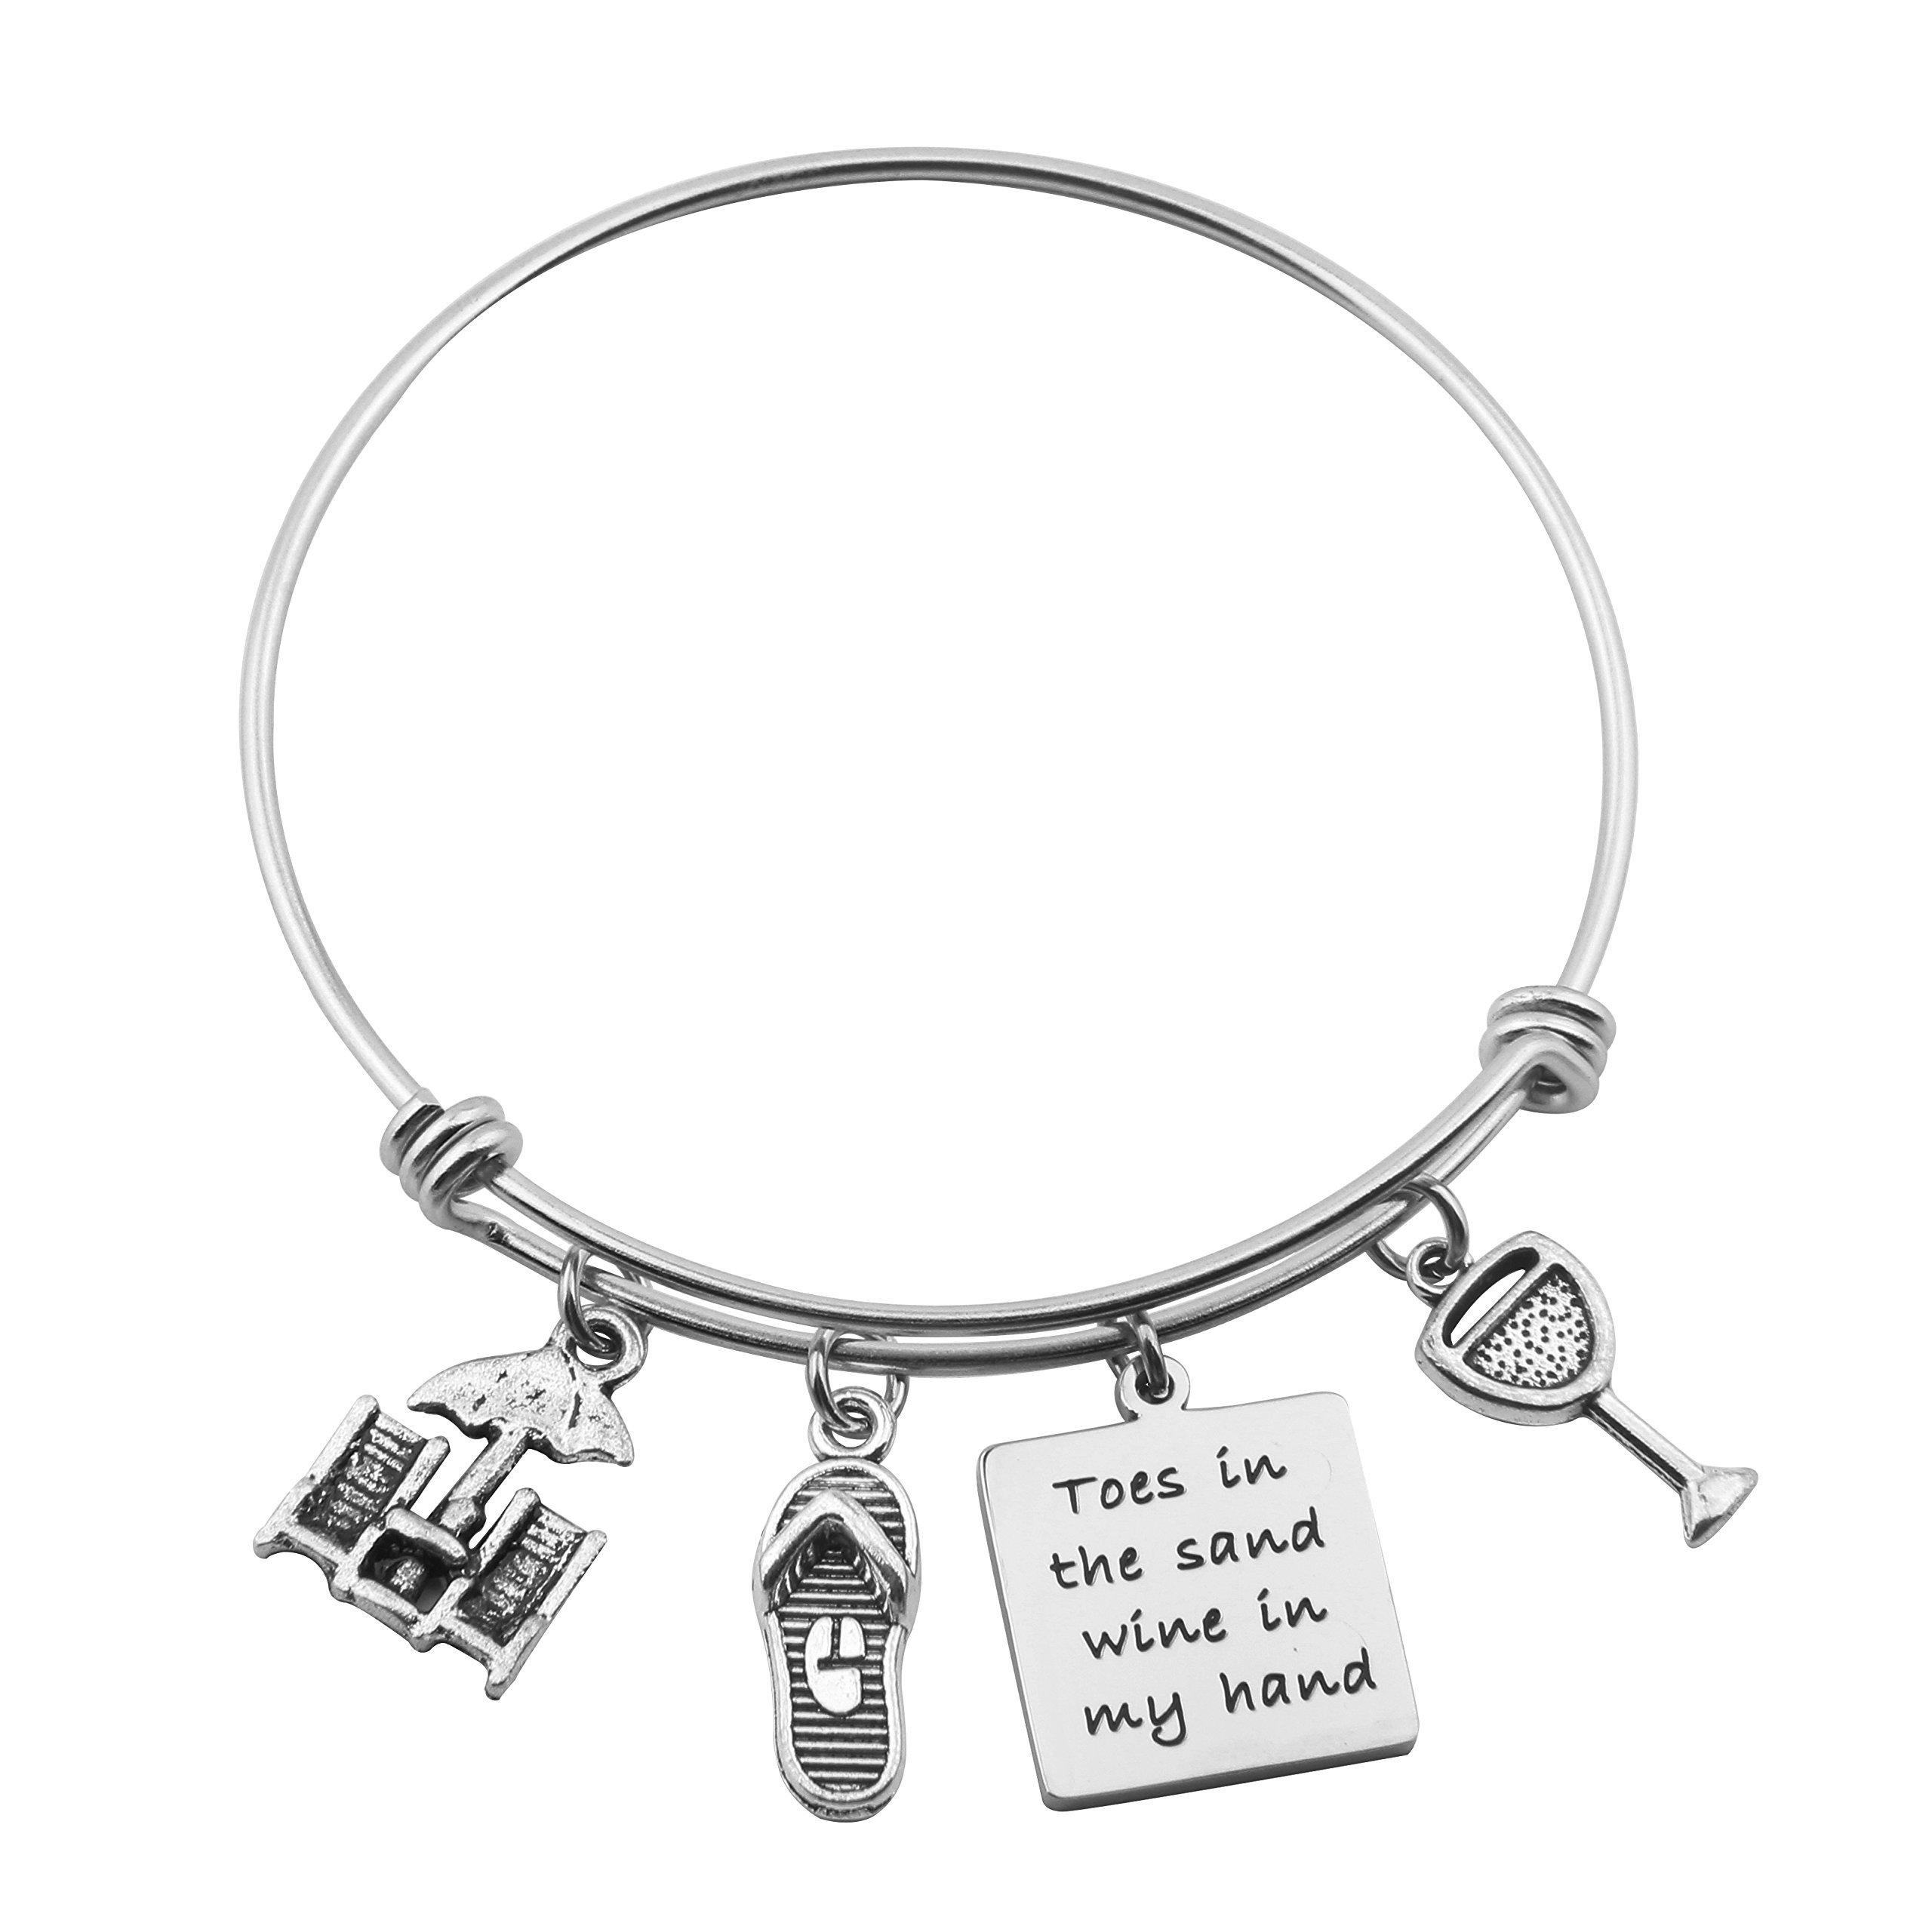 SEIRAA Toes in the Sand Wine in My Hand Stainless Steel Expandable Bangle Wine Lovers Beach Bangle Bracelet (charm bracelet)